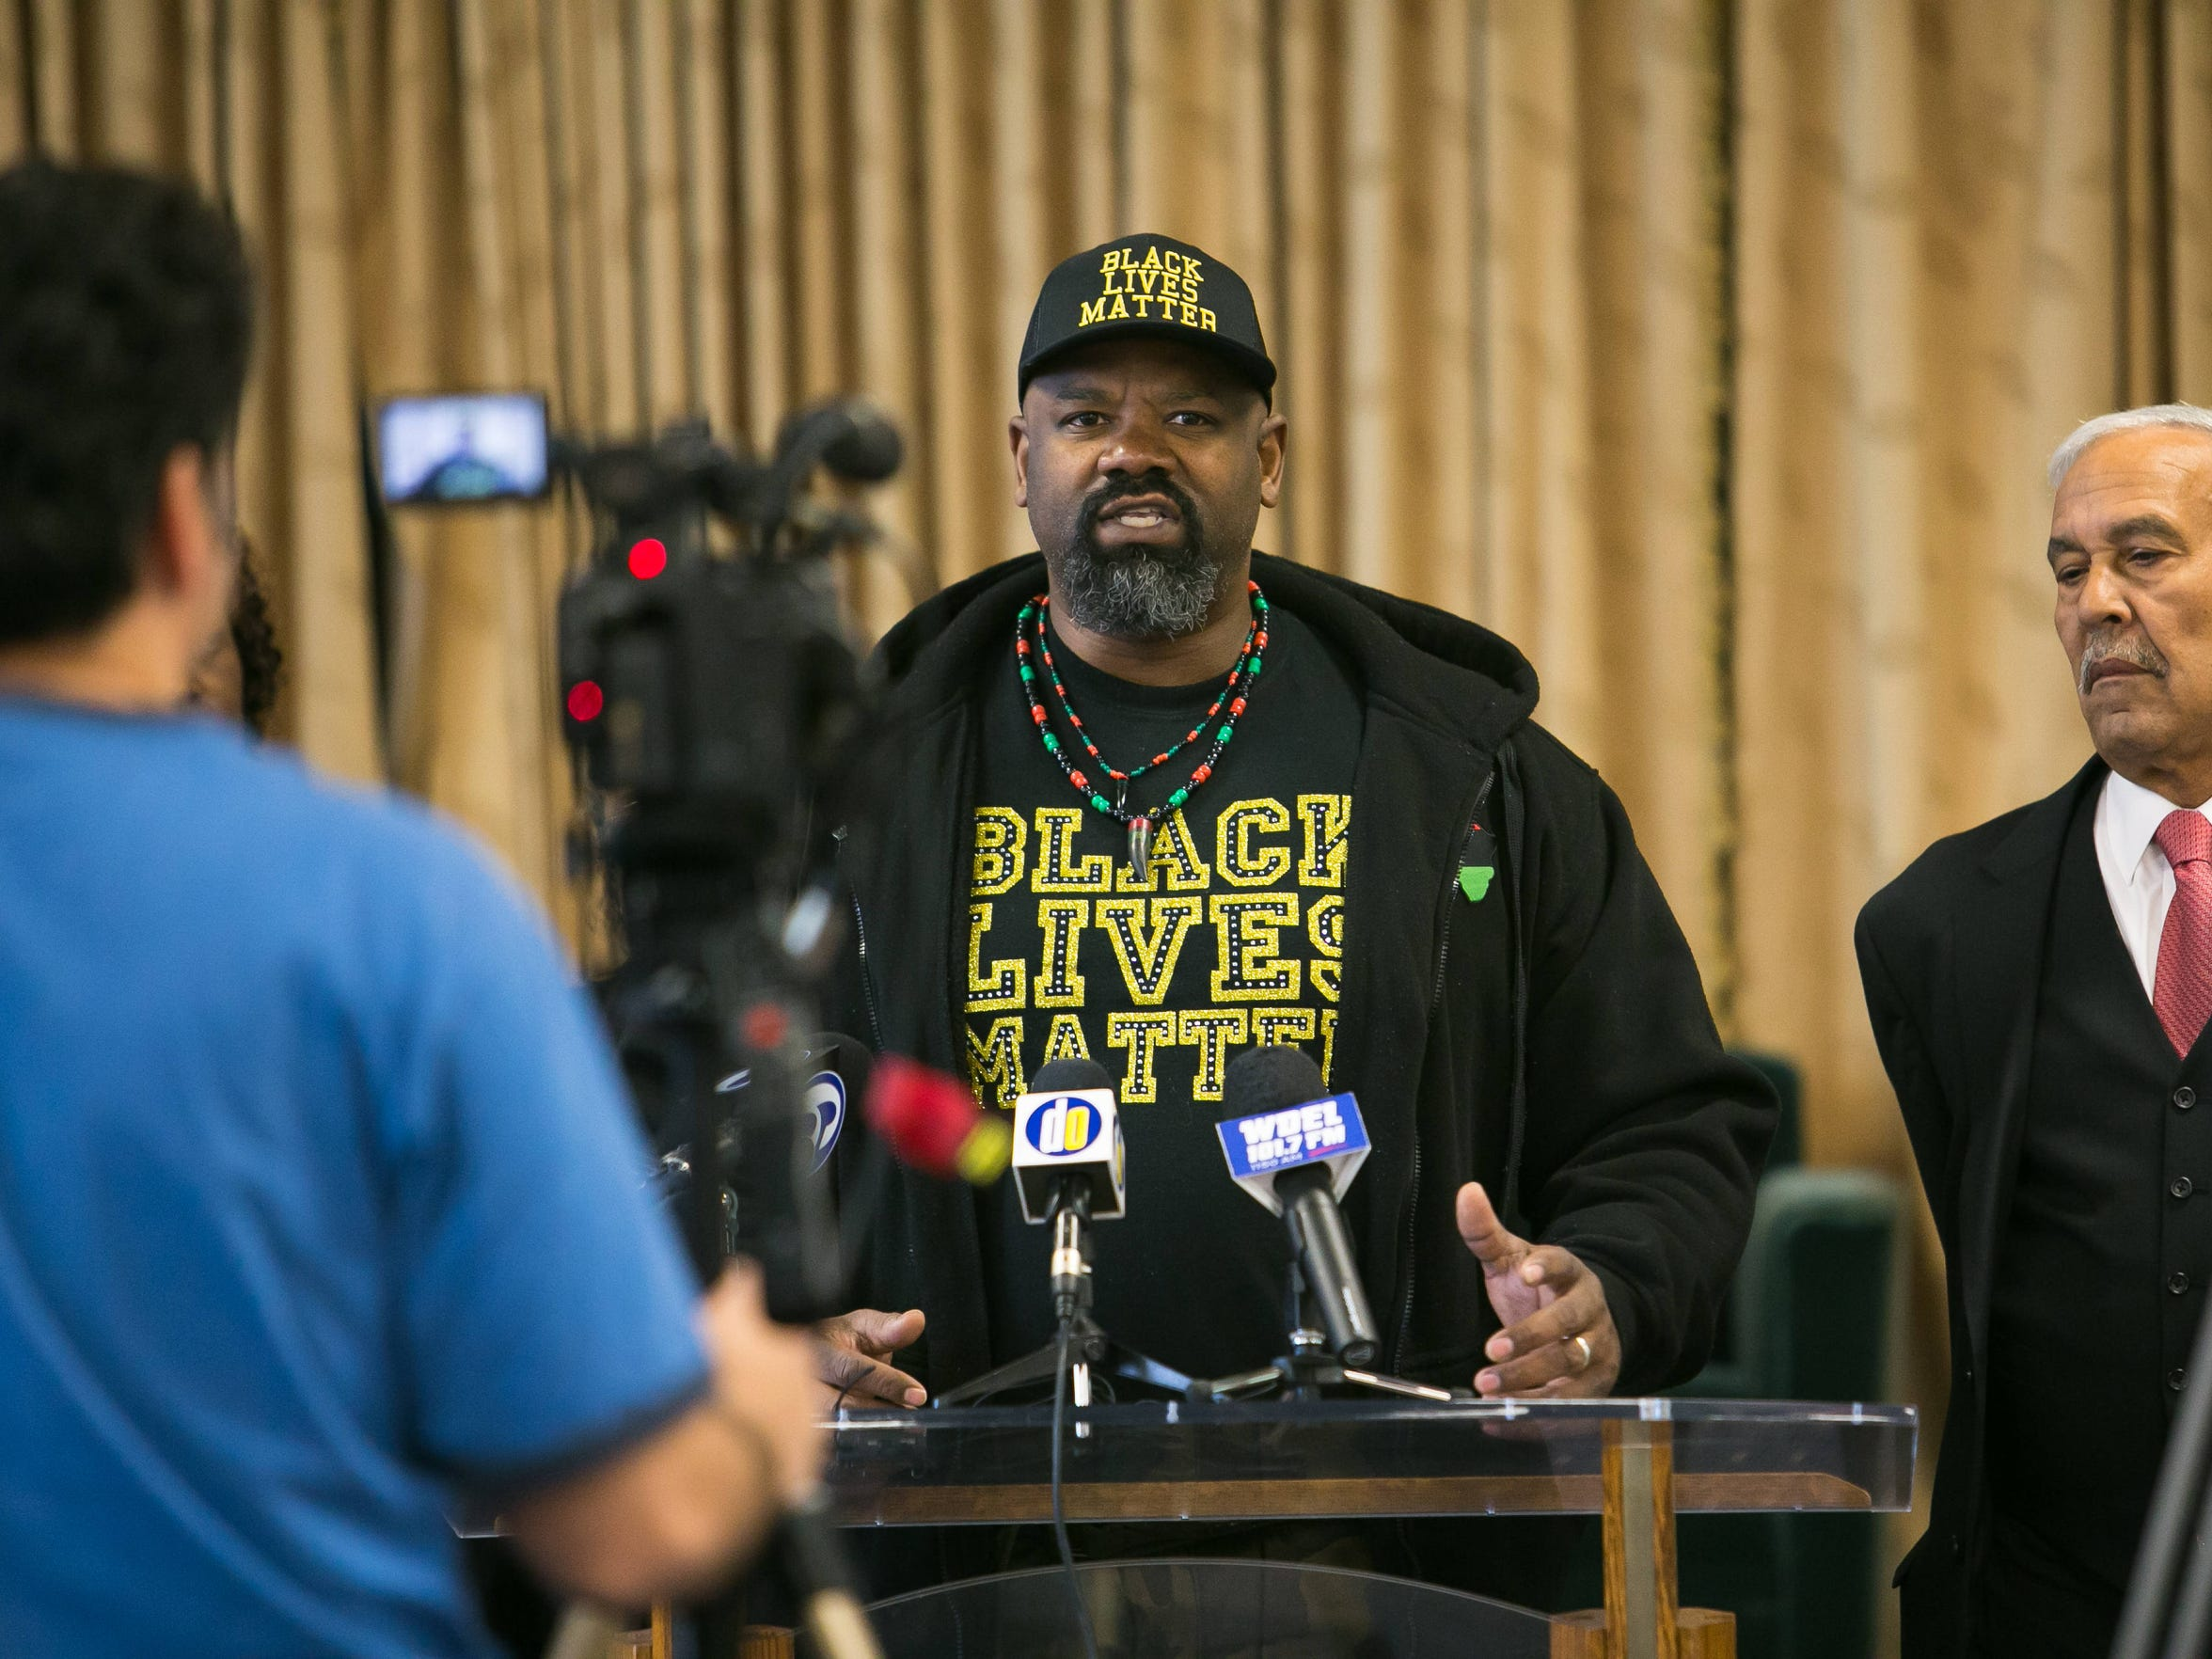 Mahkie Booker with Black Lives Matter speaks Wednesday morning at Tabernacle Full Gospel Baptist Cathedral to ask the U.S. Department of Justice to launch a criminal investigation into the shooting death of 28-year-old Jeremy McDole.